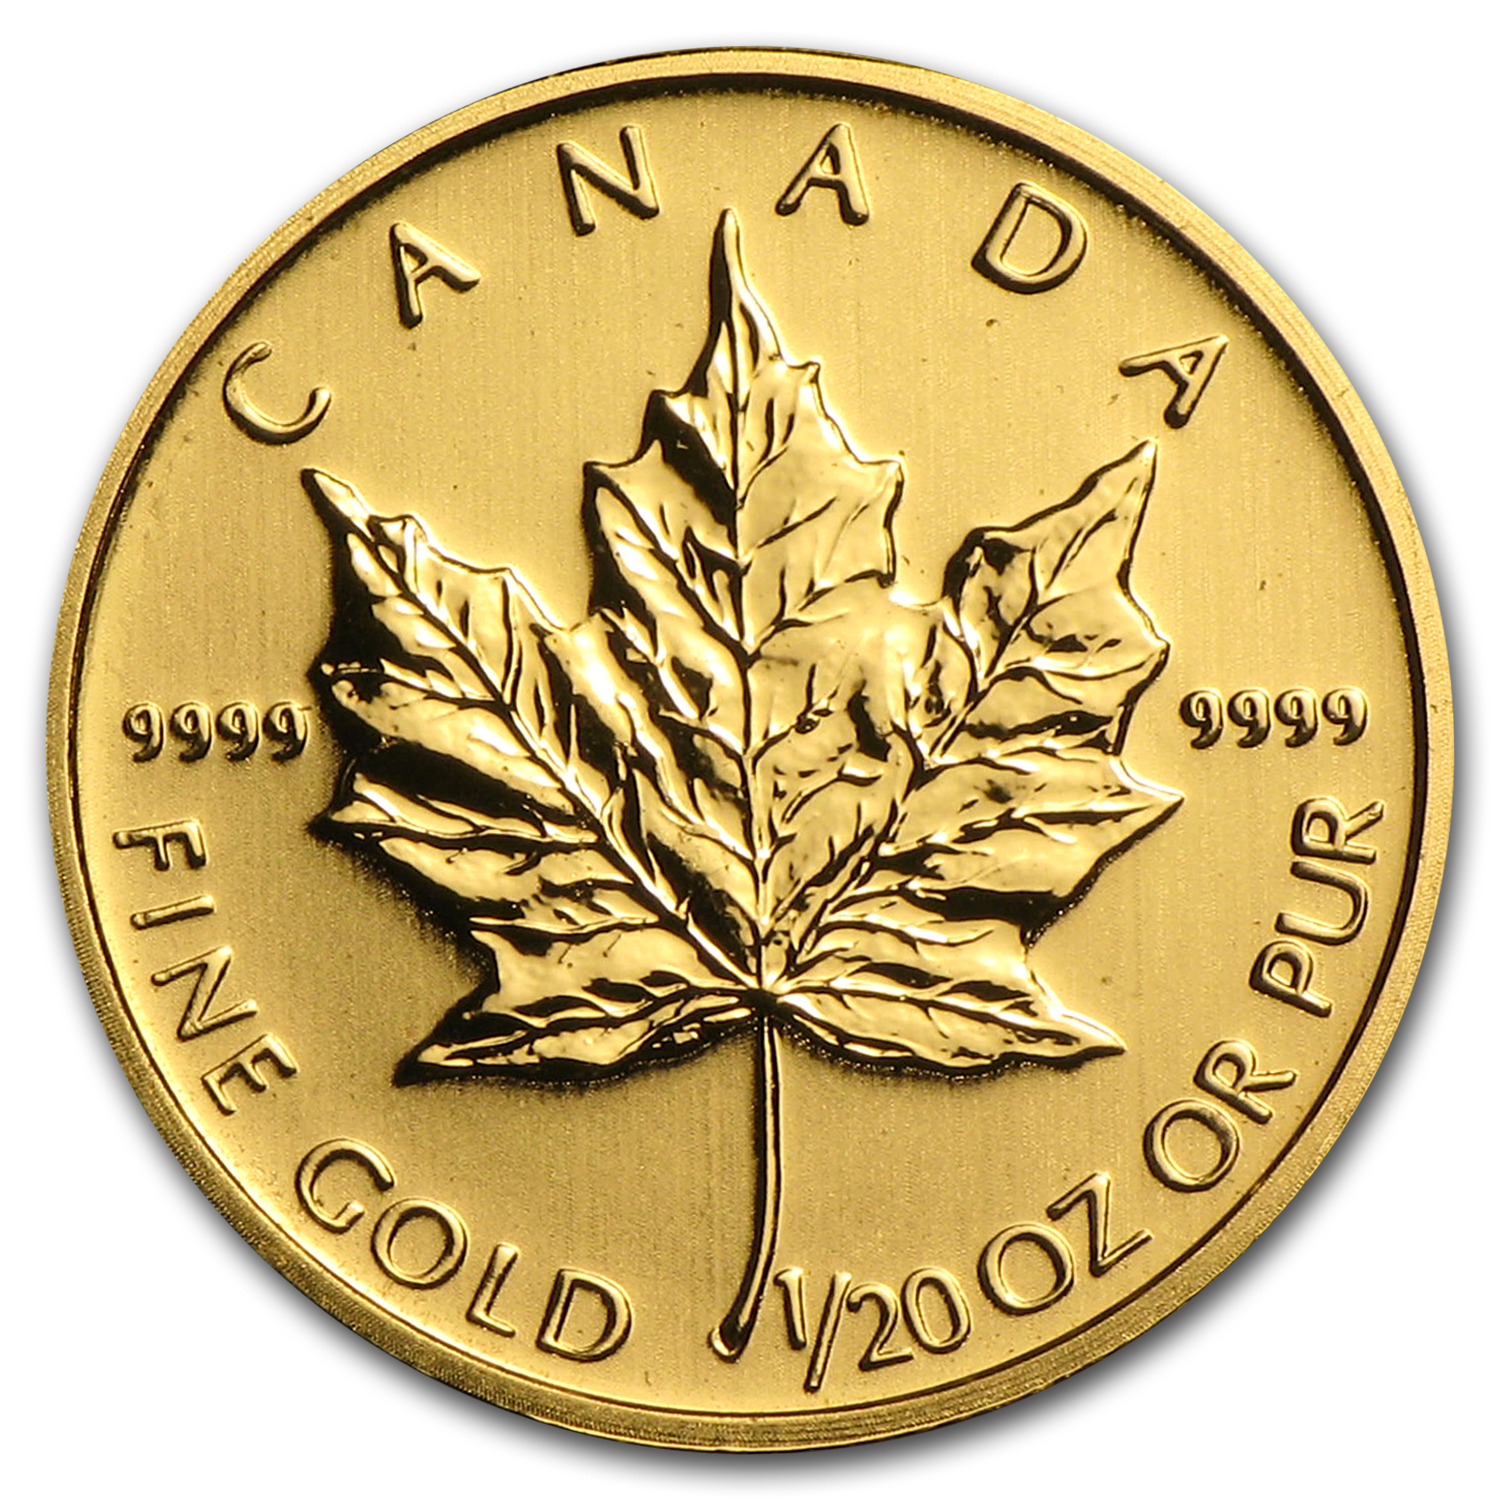 1/20 oz Gold Canadian Maple Leaf - Random Year